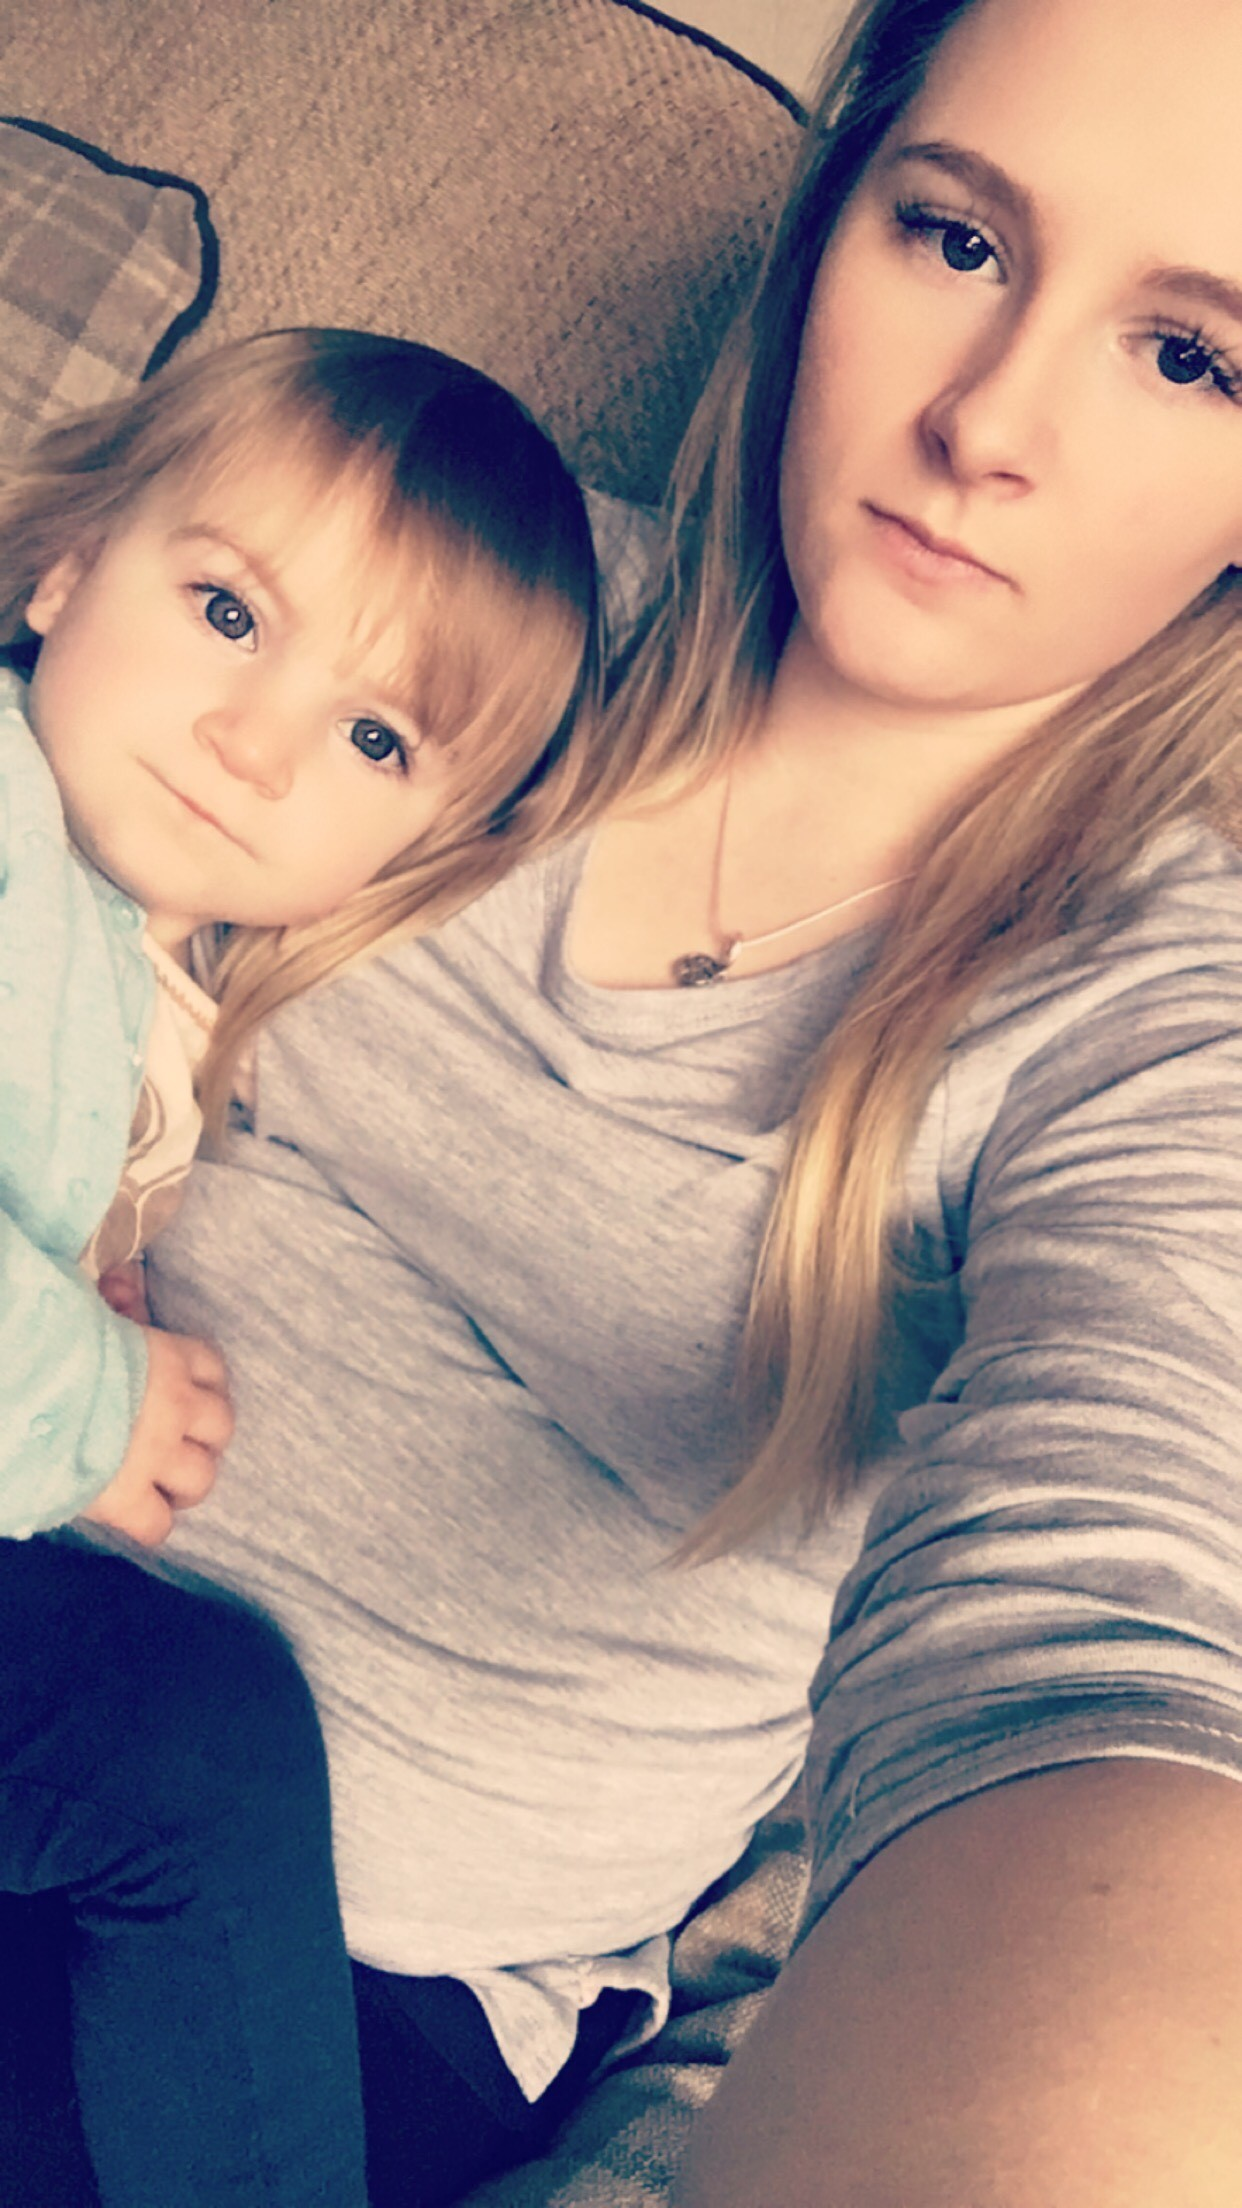 Mum's anger after being told to leave cafe because baby was crying